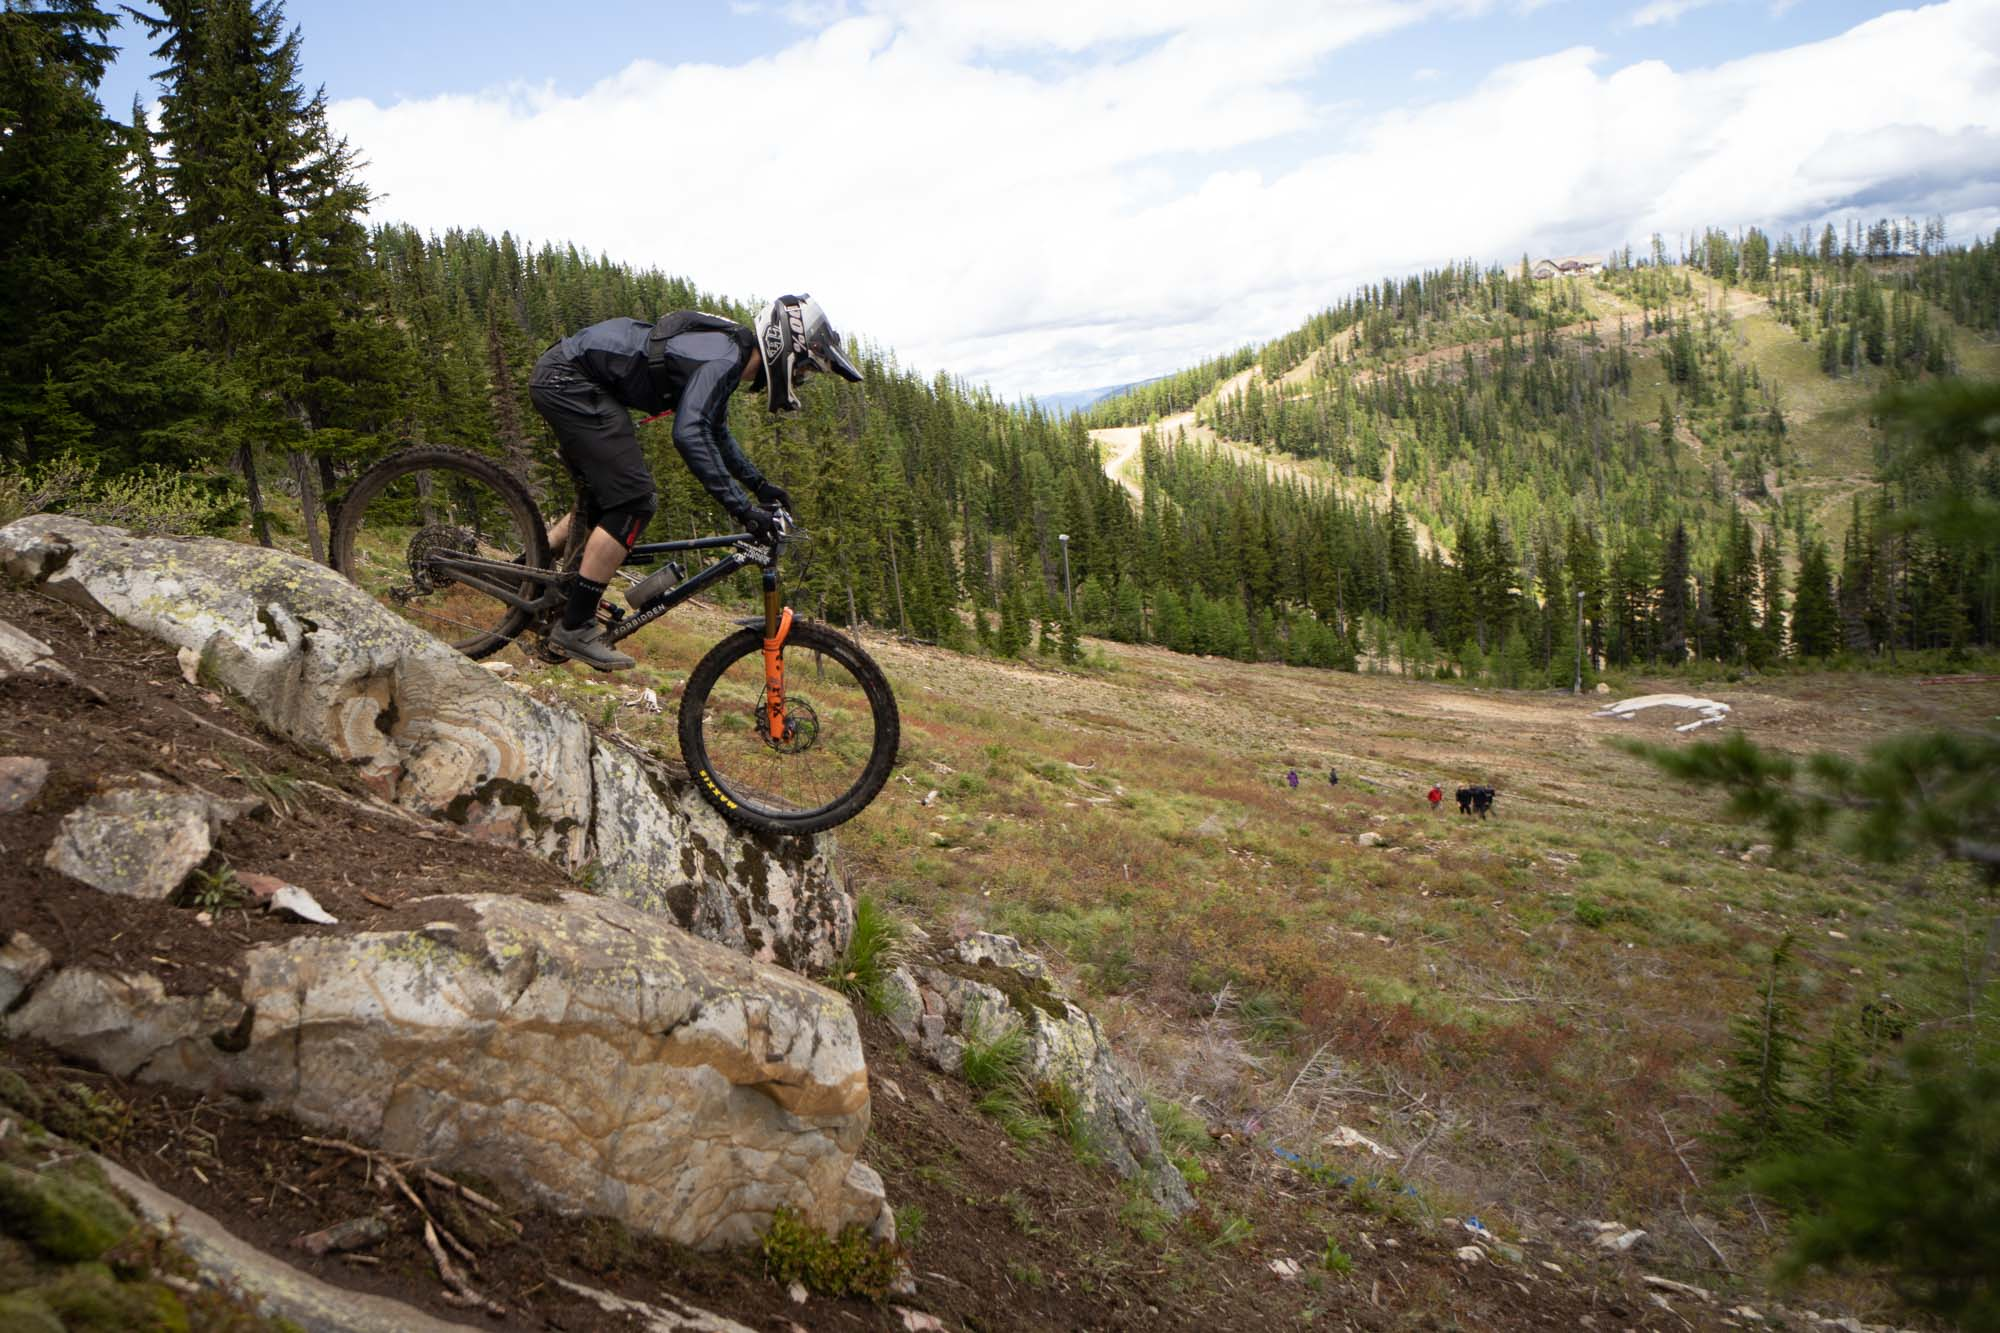 Andrew at the 2021 NAEC race at Silver Mountain in Idaho.